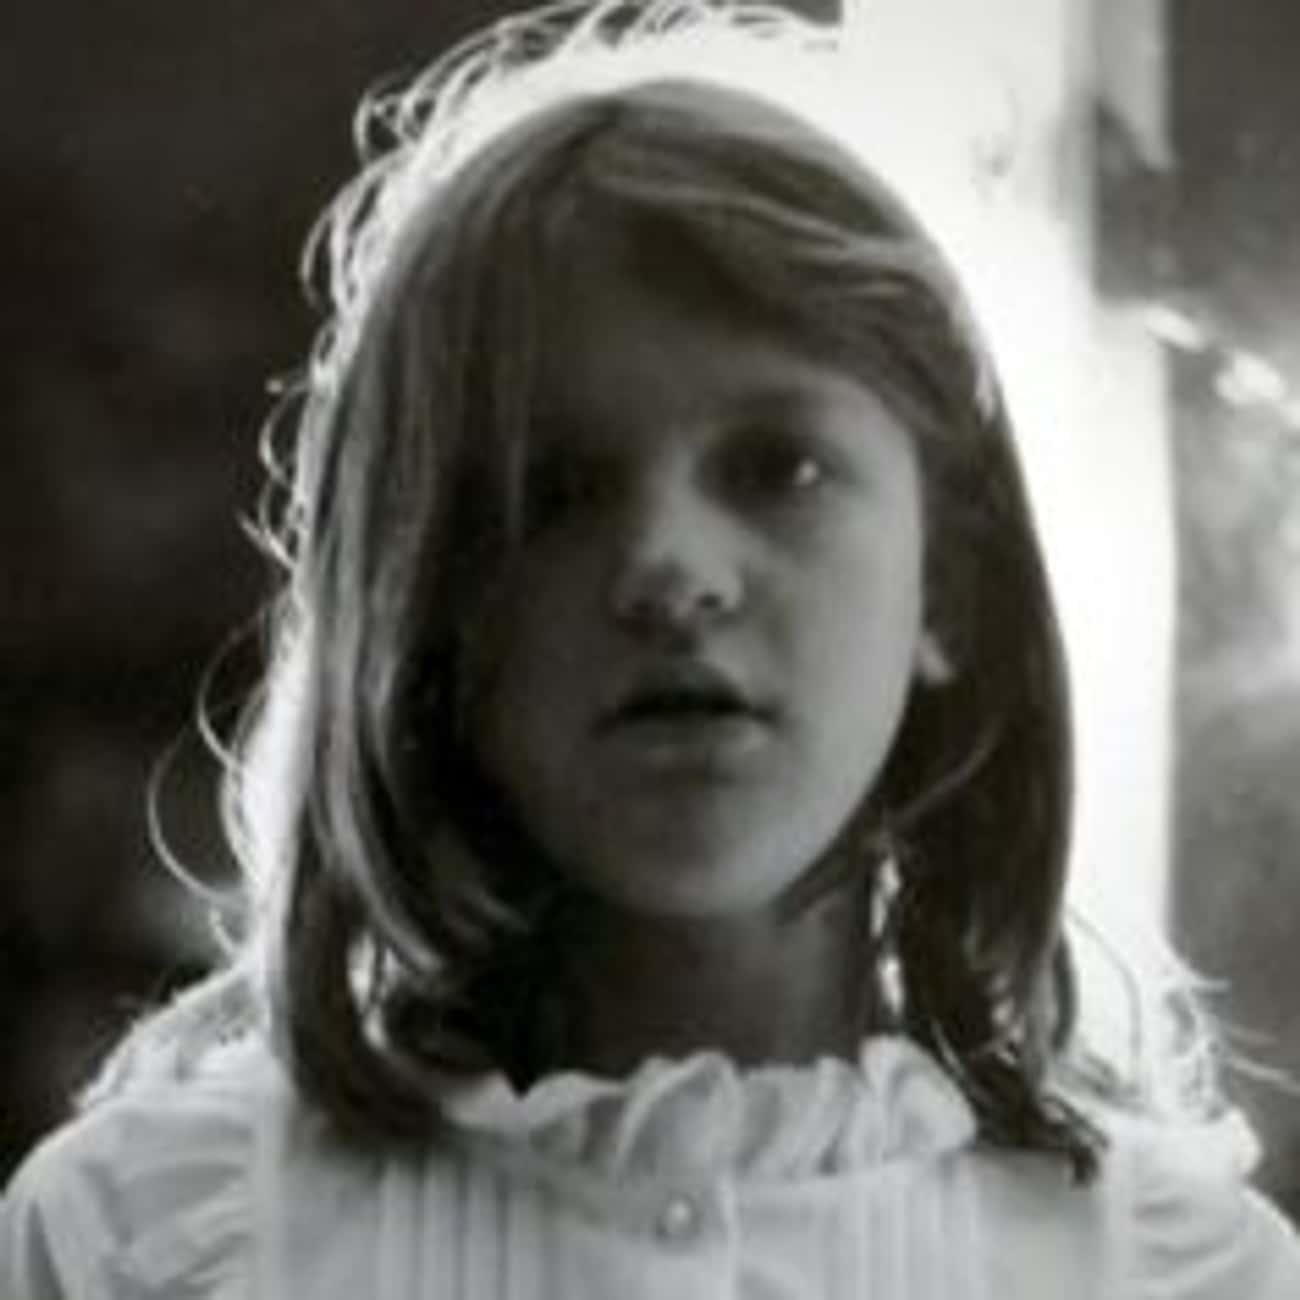 Young Courtney Love as a Kid